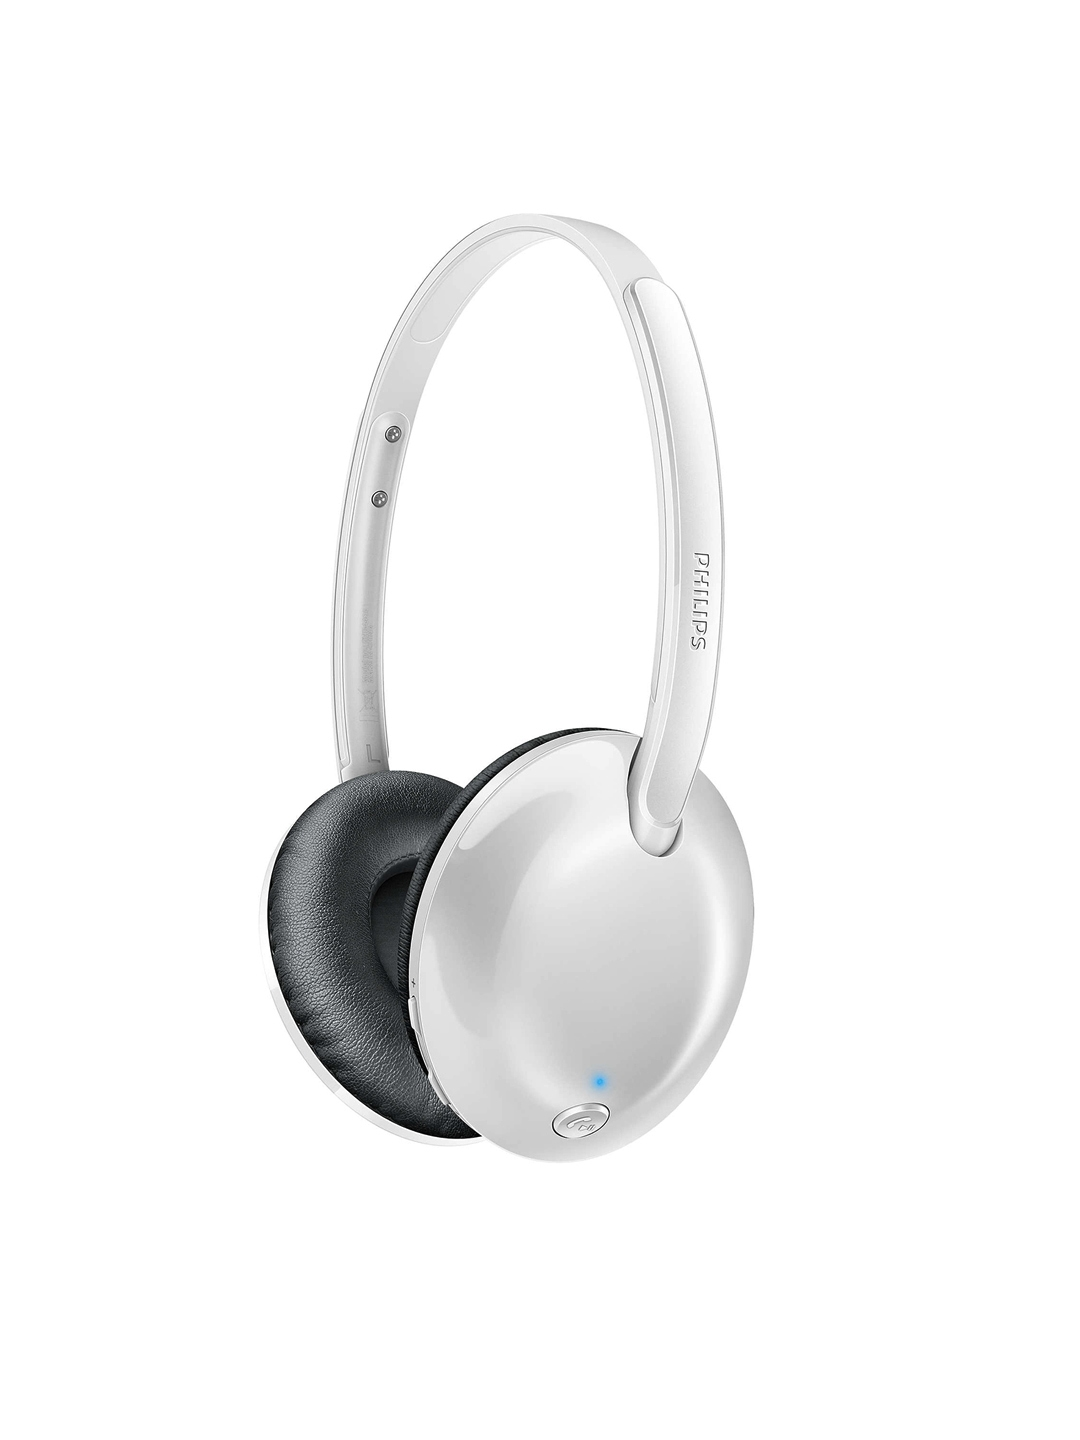 Philips White Bluetooth Headphones with Mic SHB4405WT Philips Headphones